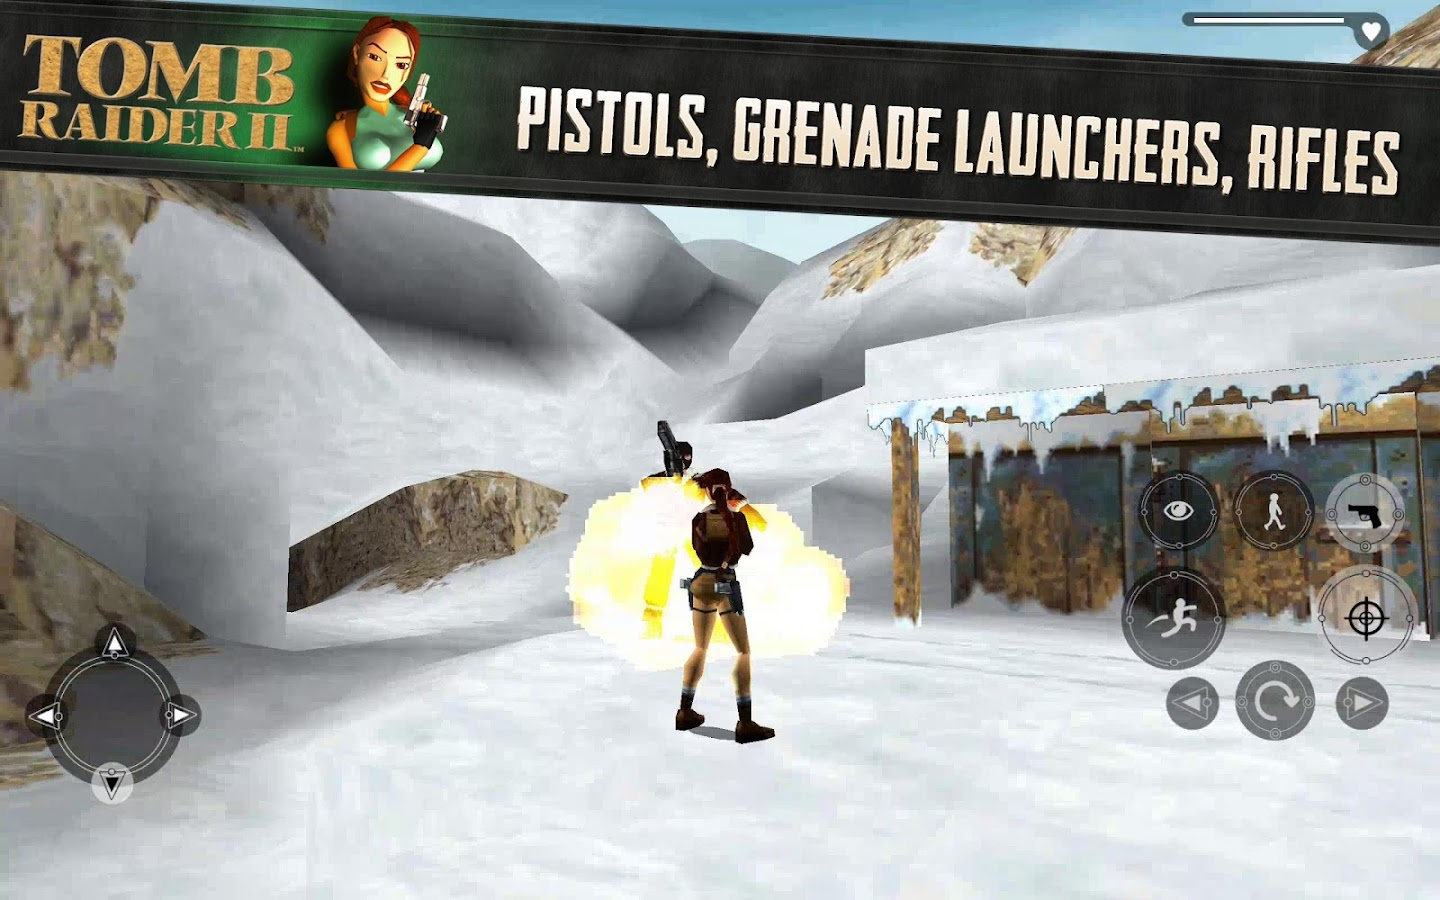 Tomb Raider II Screenshot 8